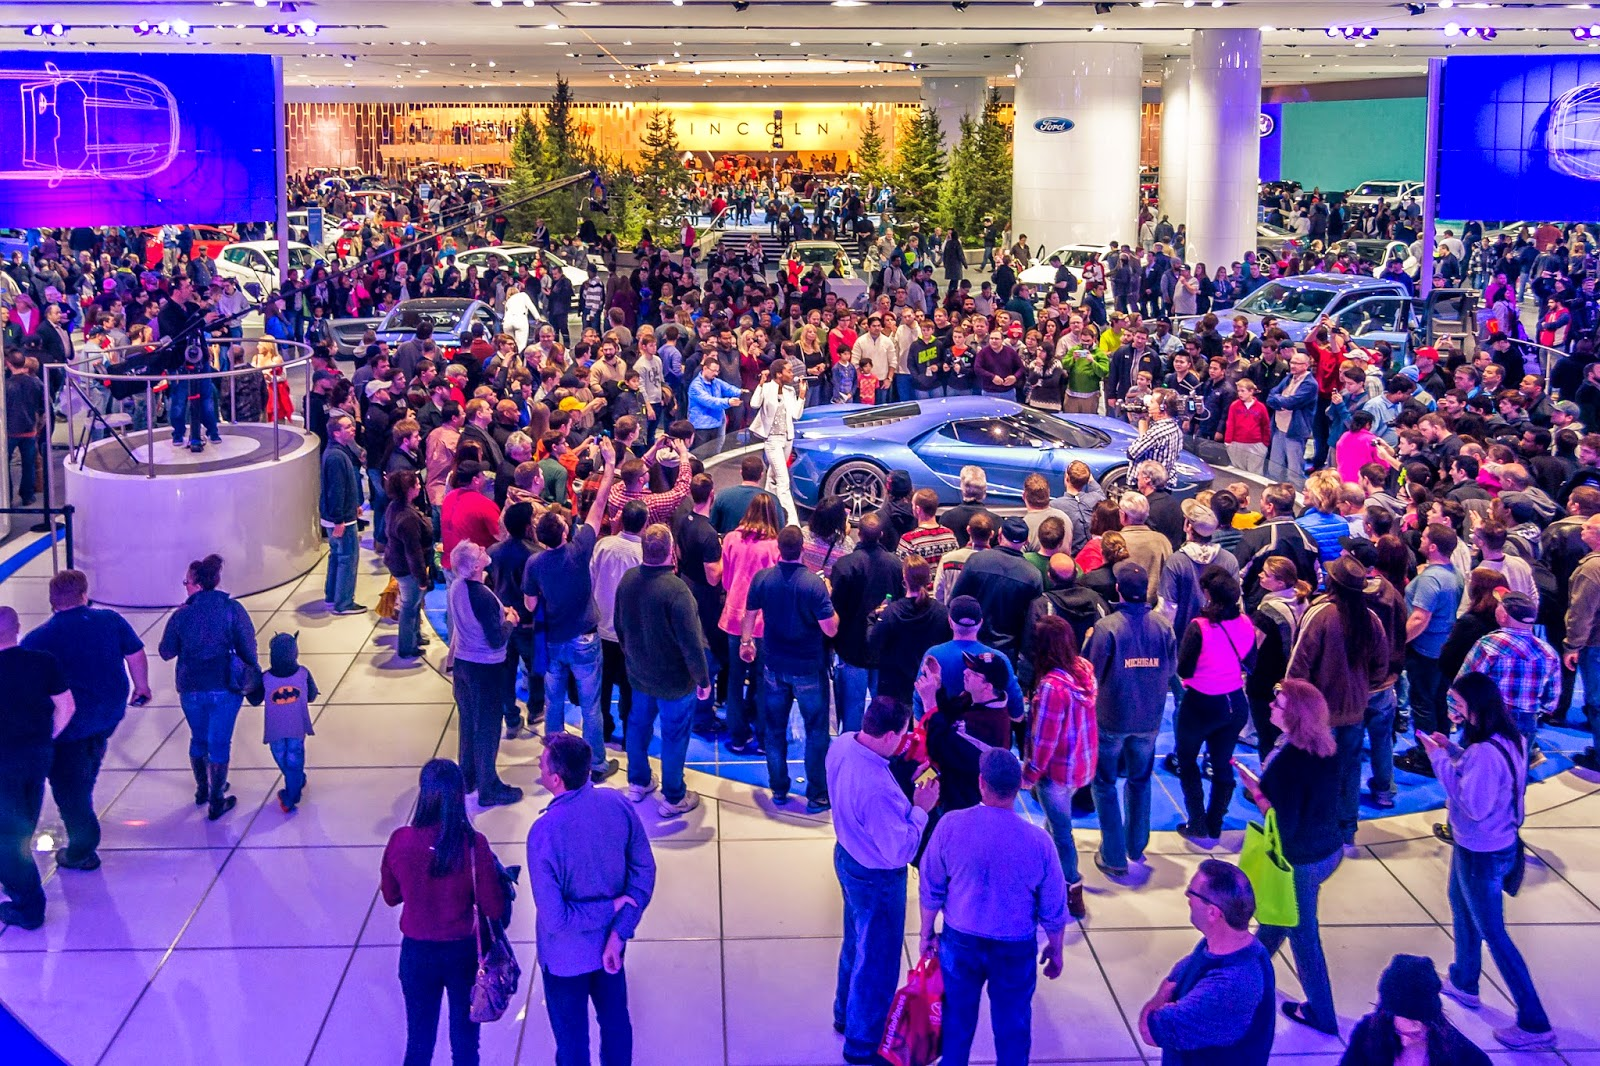 crains-detroit--Michigan-business-car-show-crowd